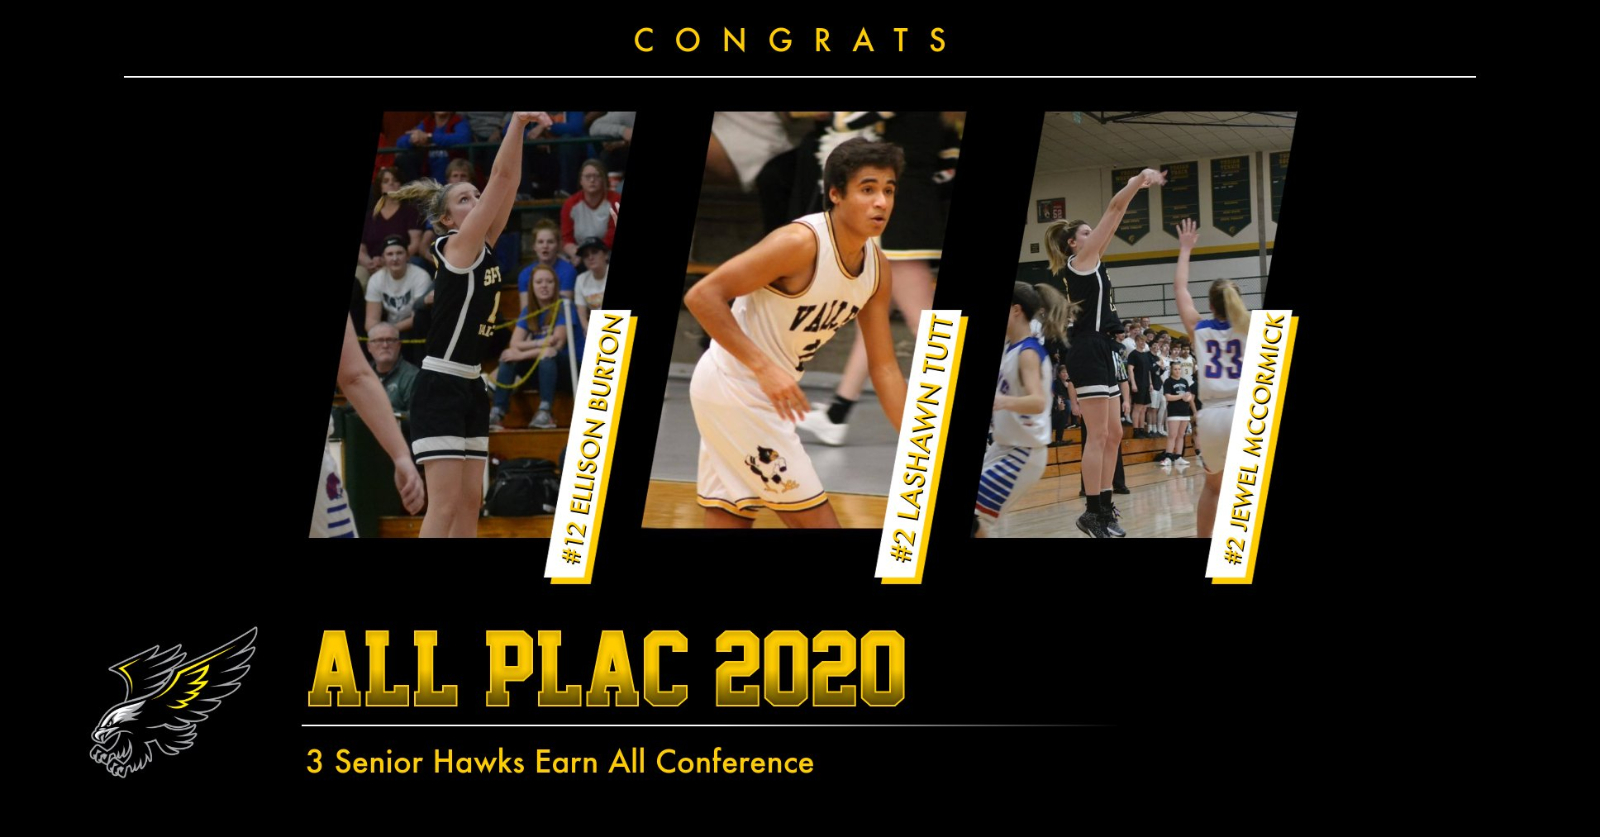 3 Seniors Earn All Conference